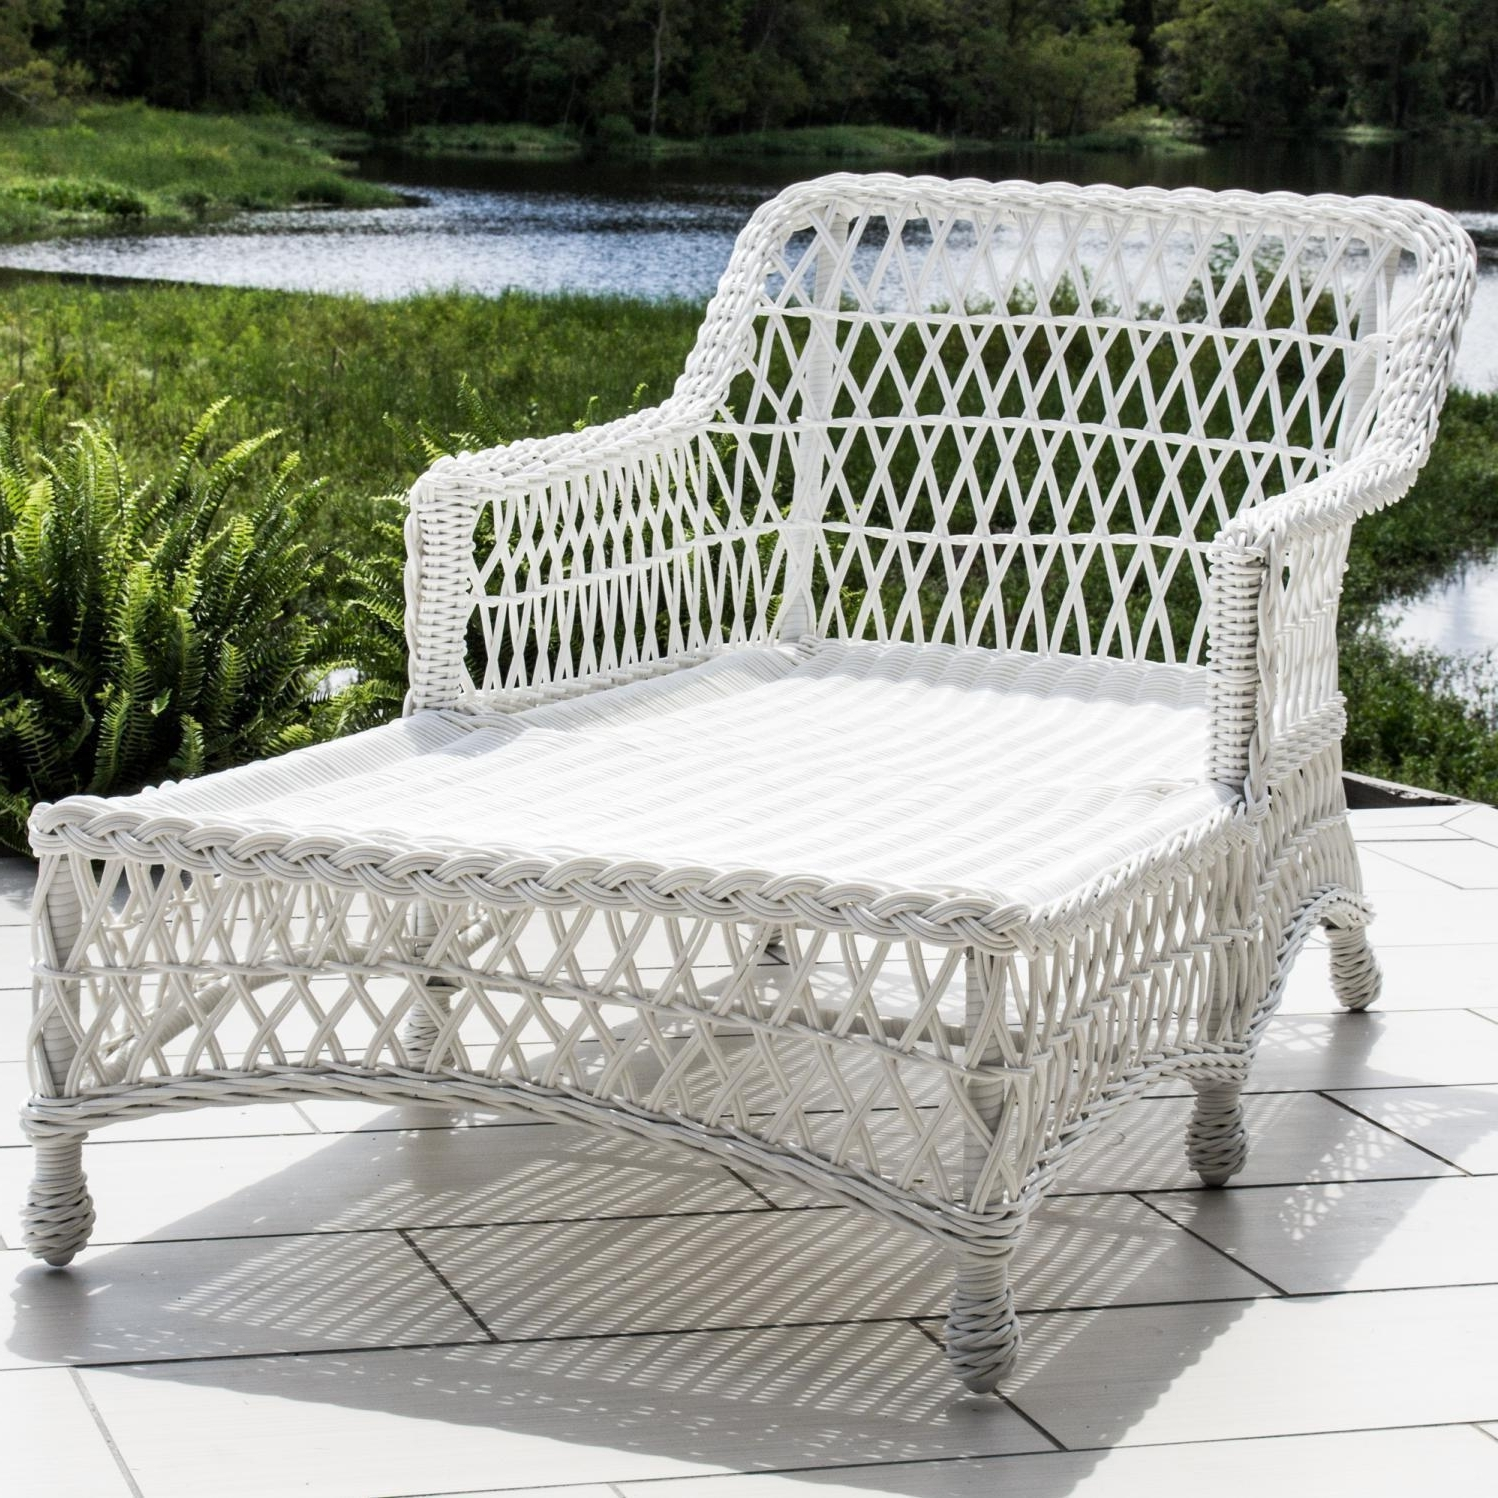 White Wicker Chaise Lounges In Well Known Everglades White Resin Wicker Patio Chaise Loungelakeview (View 11 of 15)